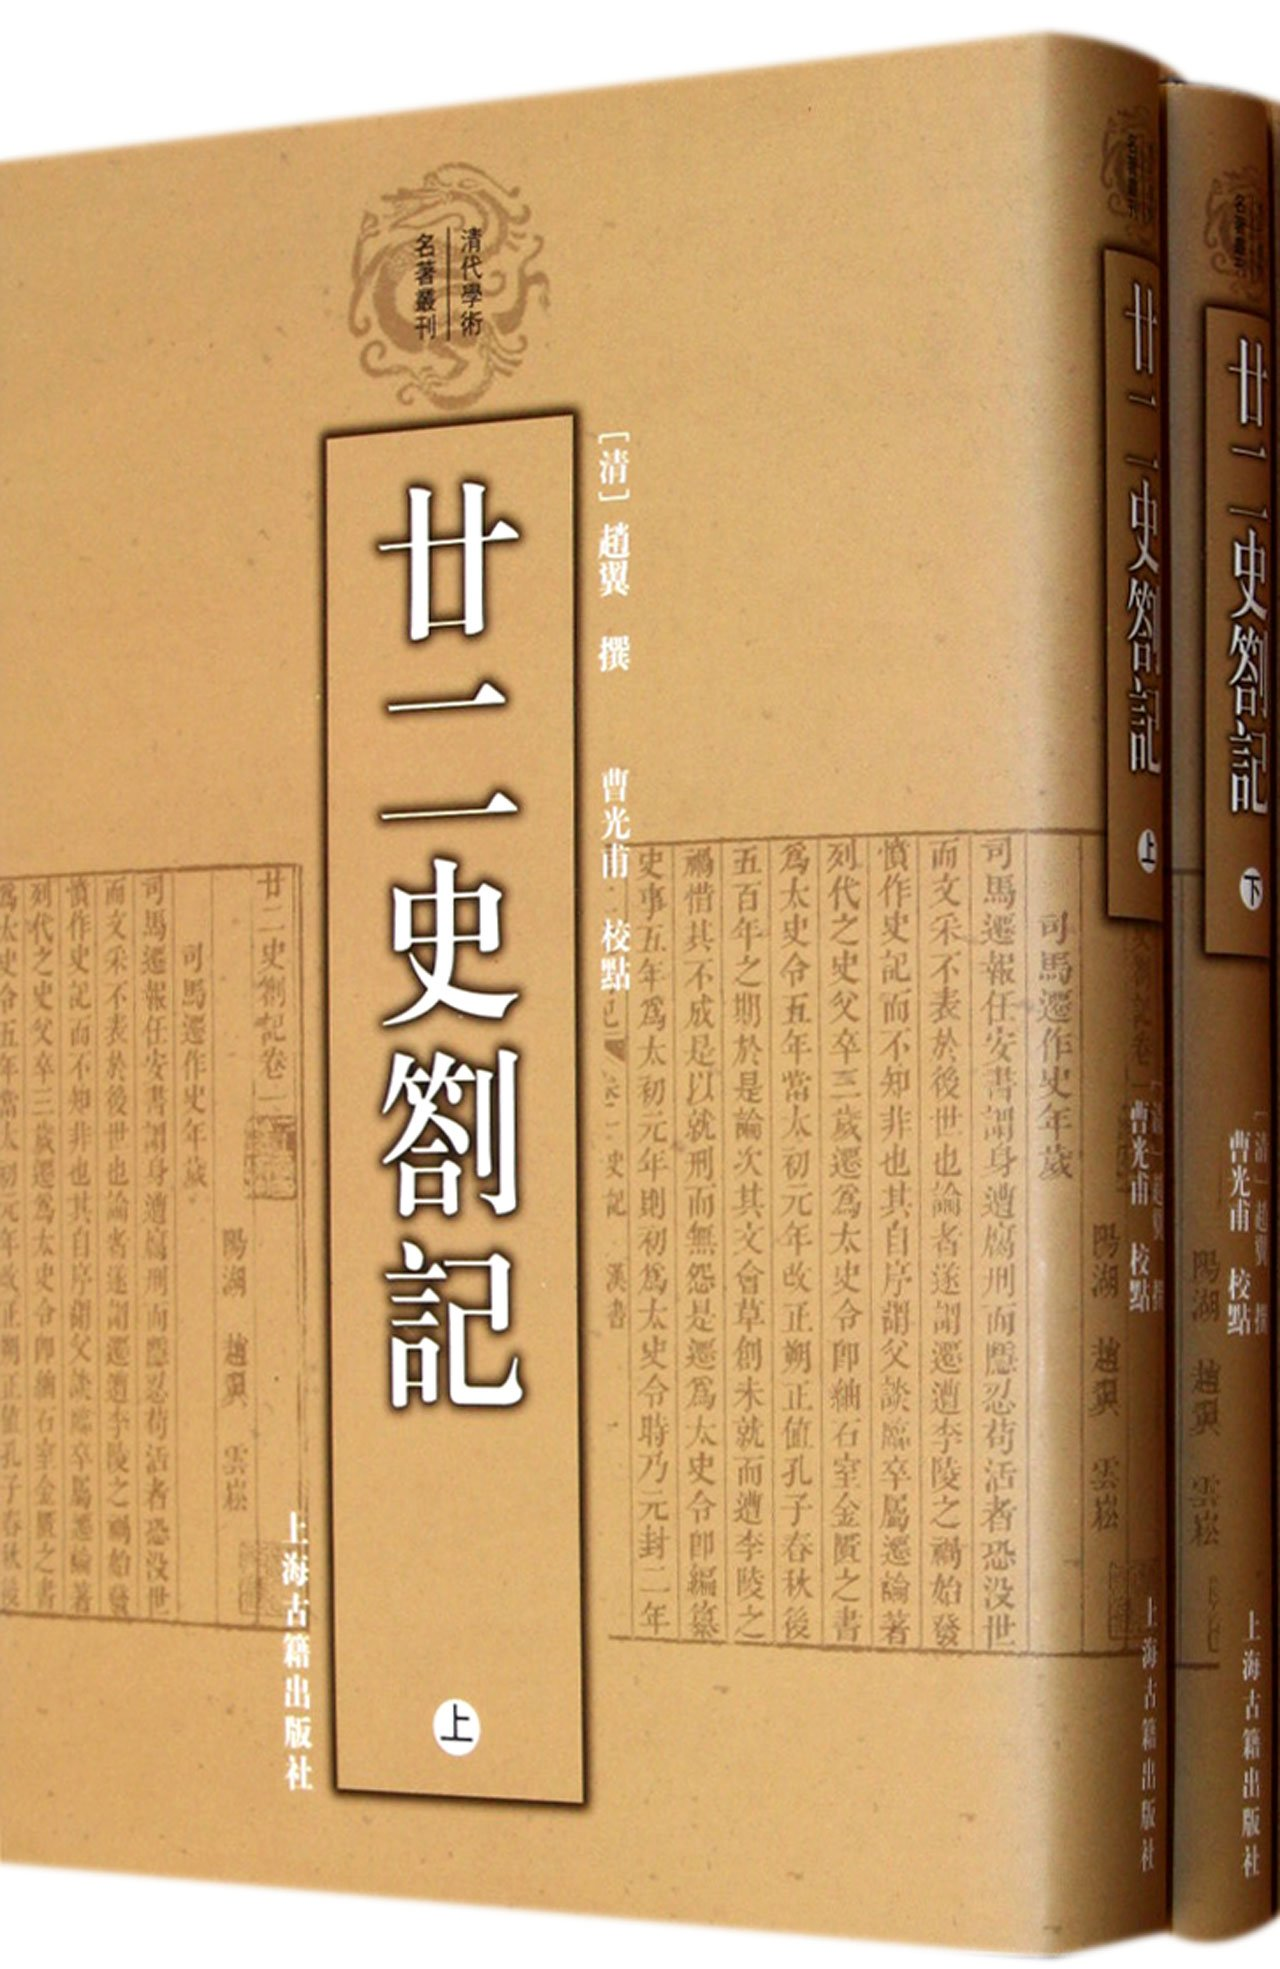 Download Notes on Reading Twenty-Two Histories, All 2 Volumes (Chinese Edition) pdf